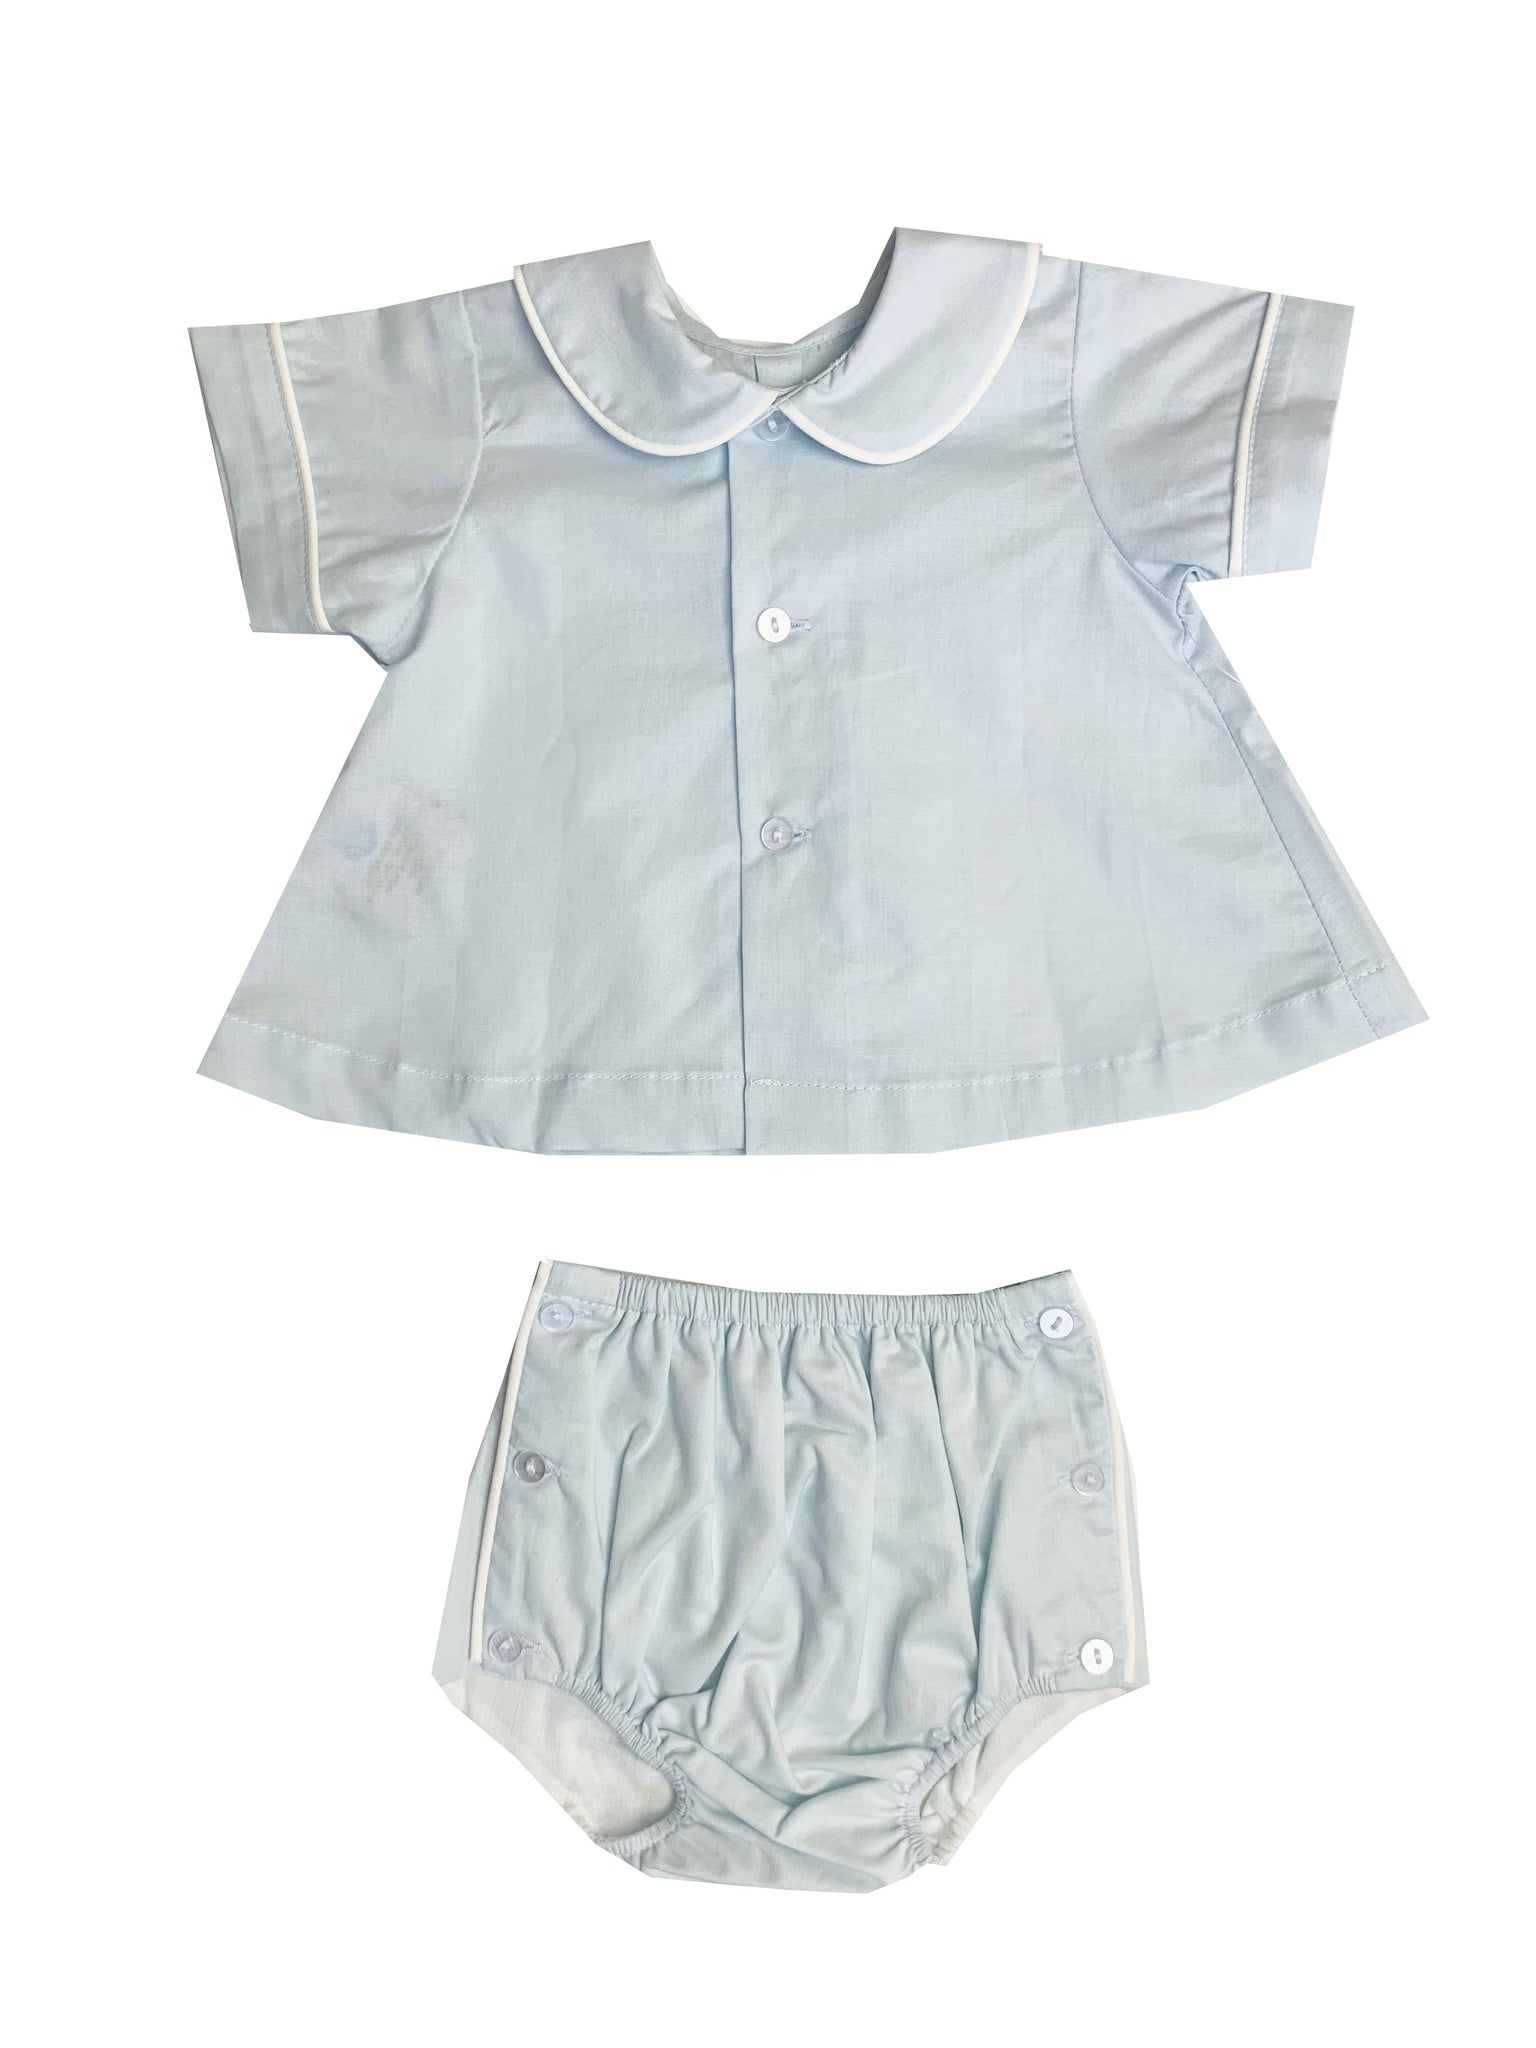 Blue and White Diaper Set - Amy Berry Home